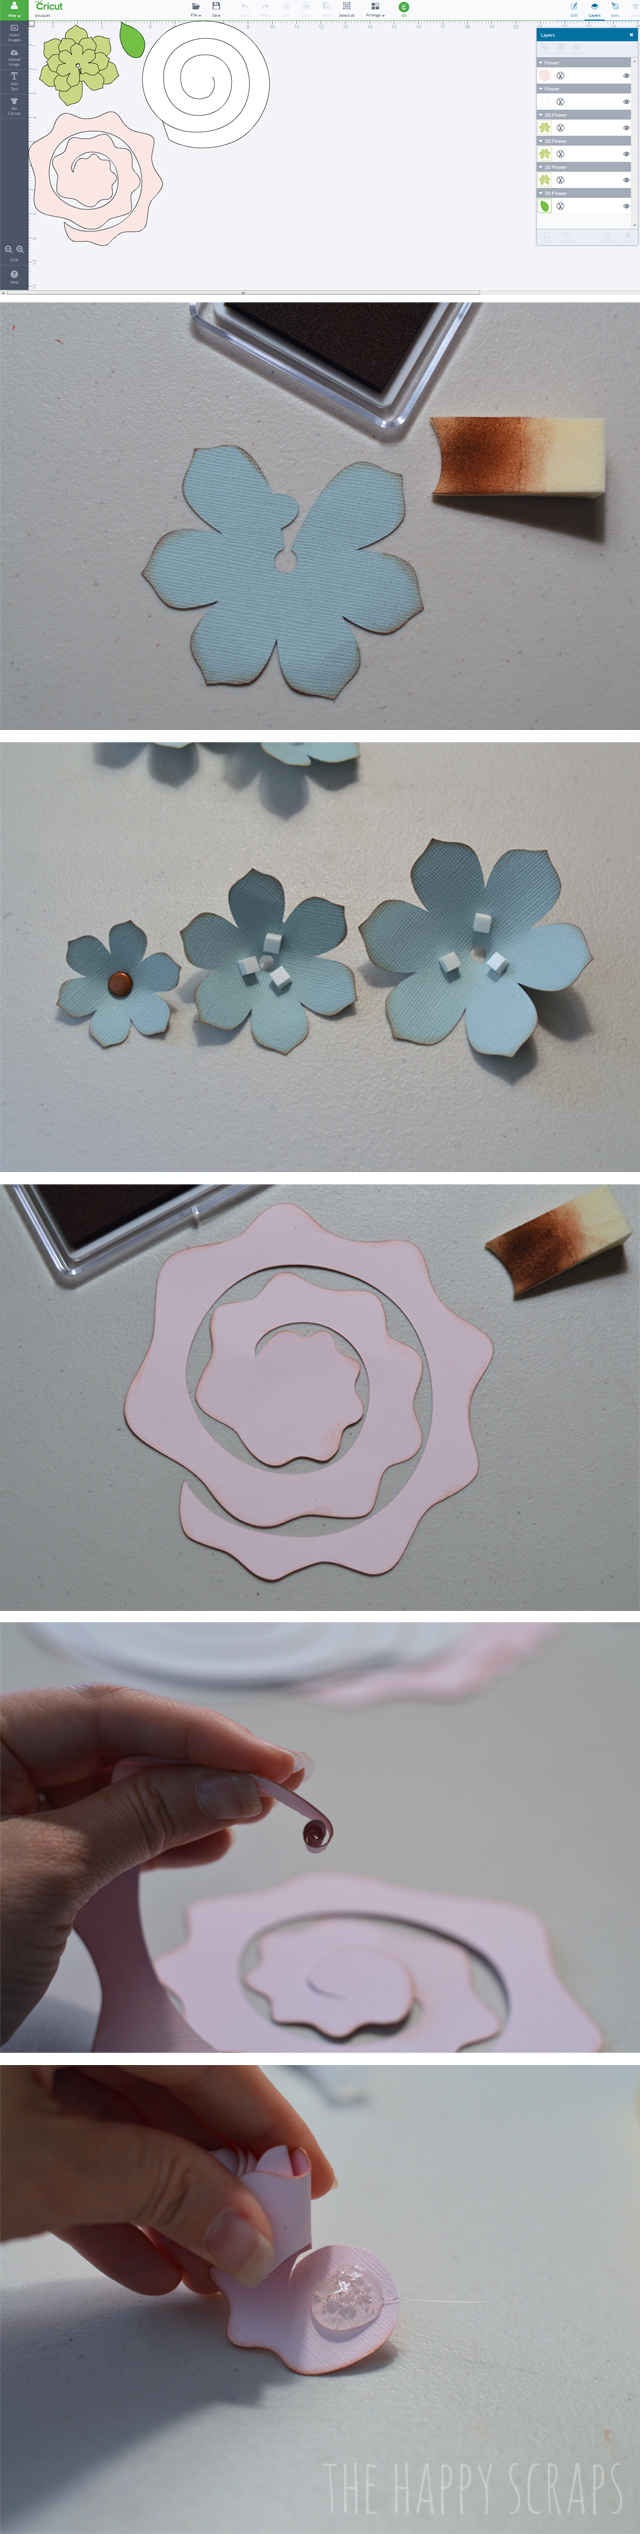 flower-collage